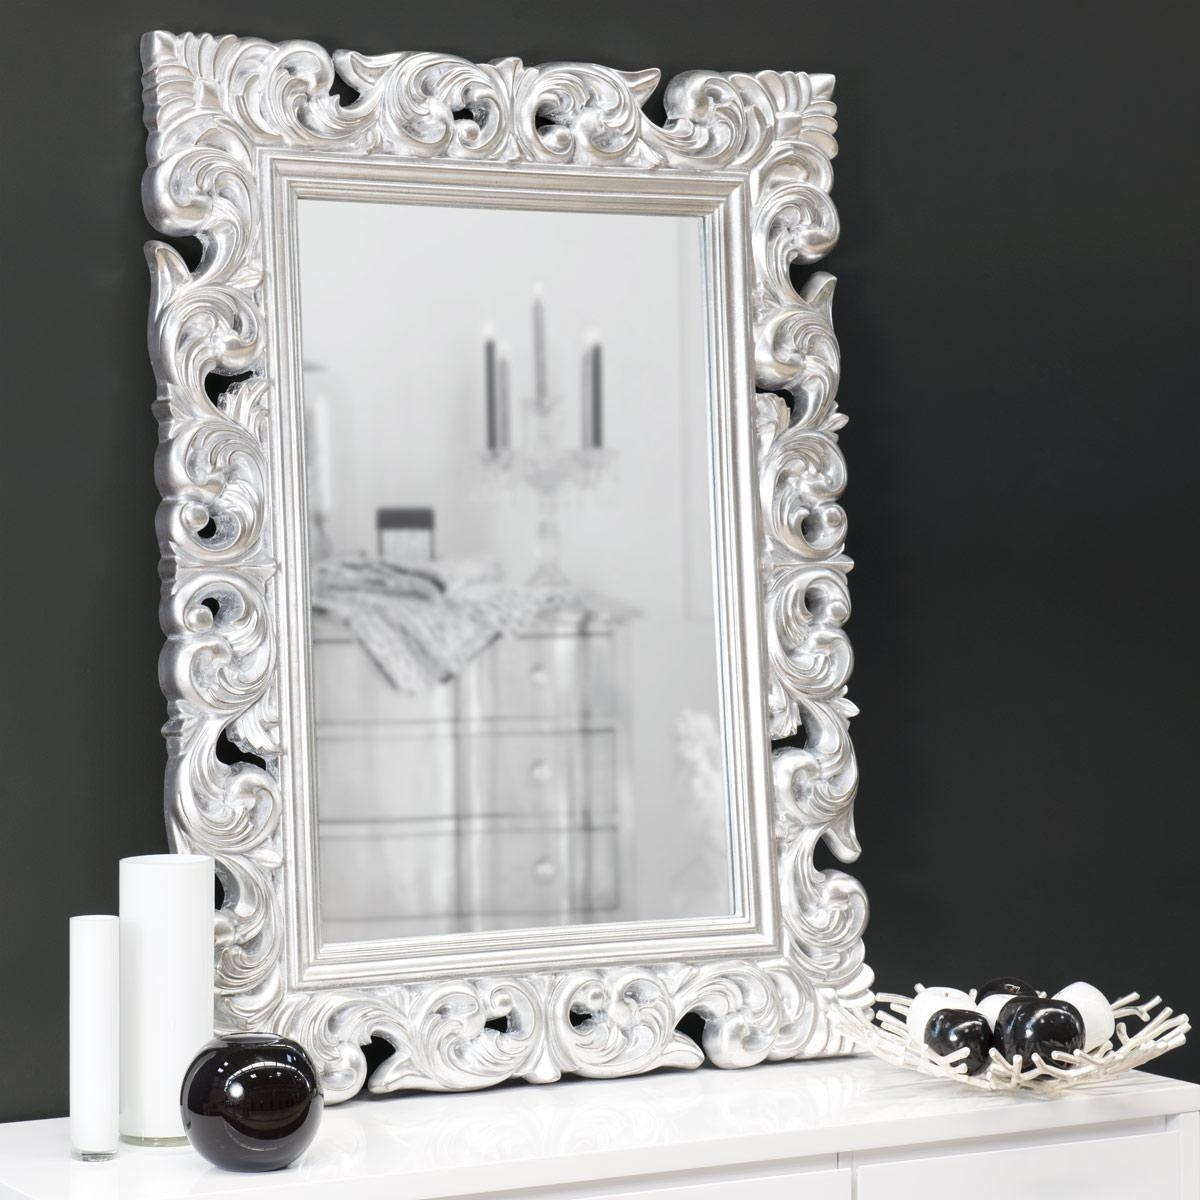 Top 15 Decorative Mirror Designs | Mostbeautifulthings In White Decorative Mirrors (View 1 of 20)